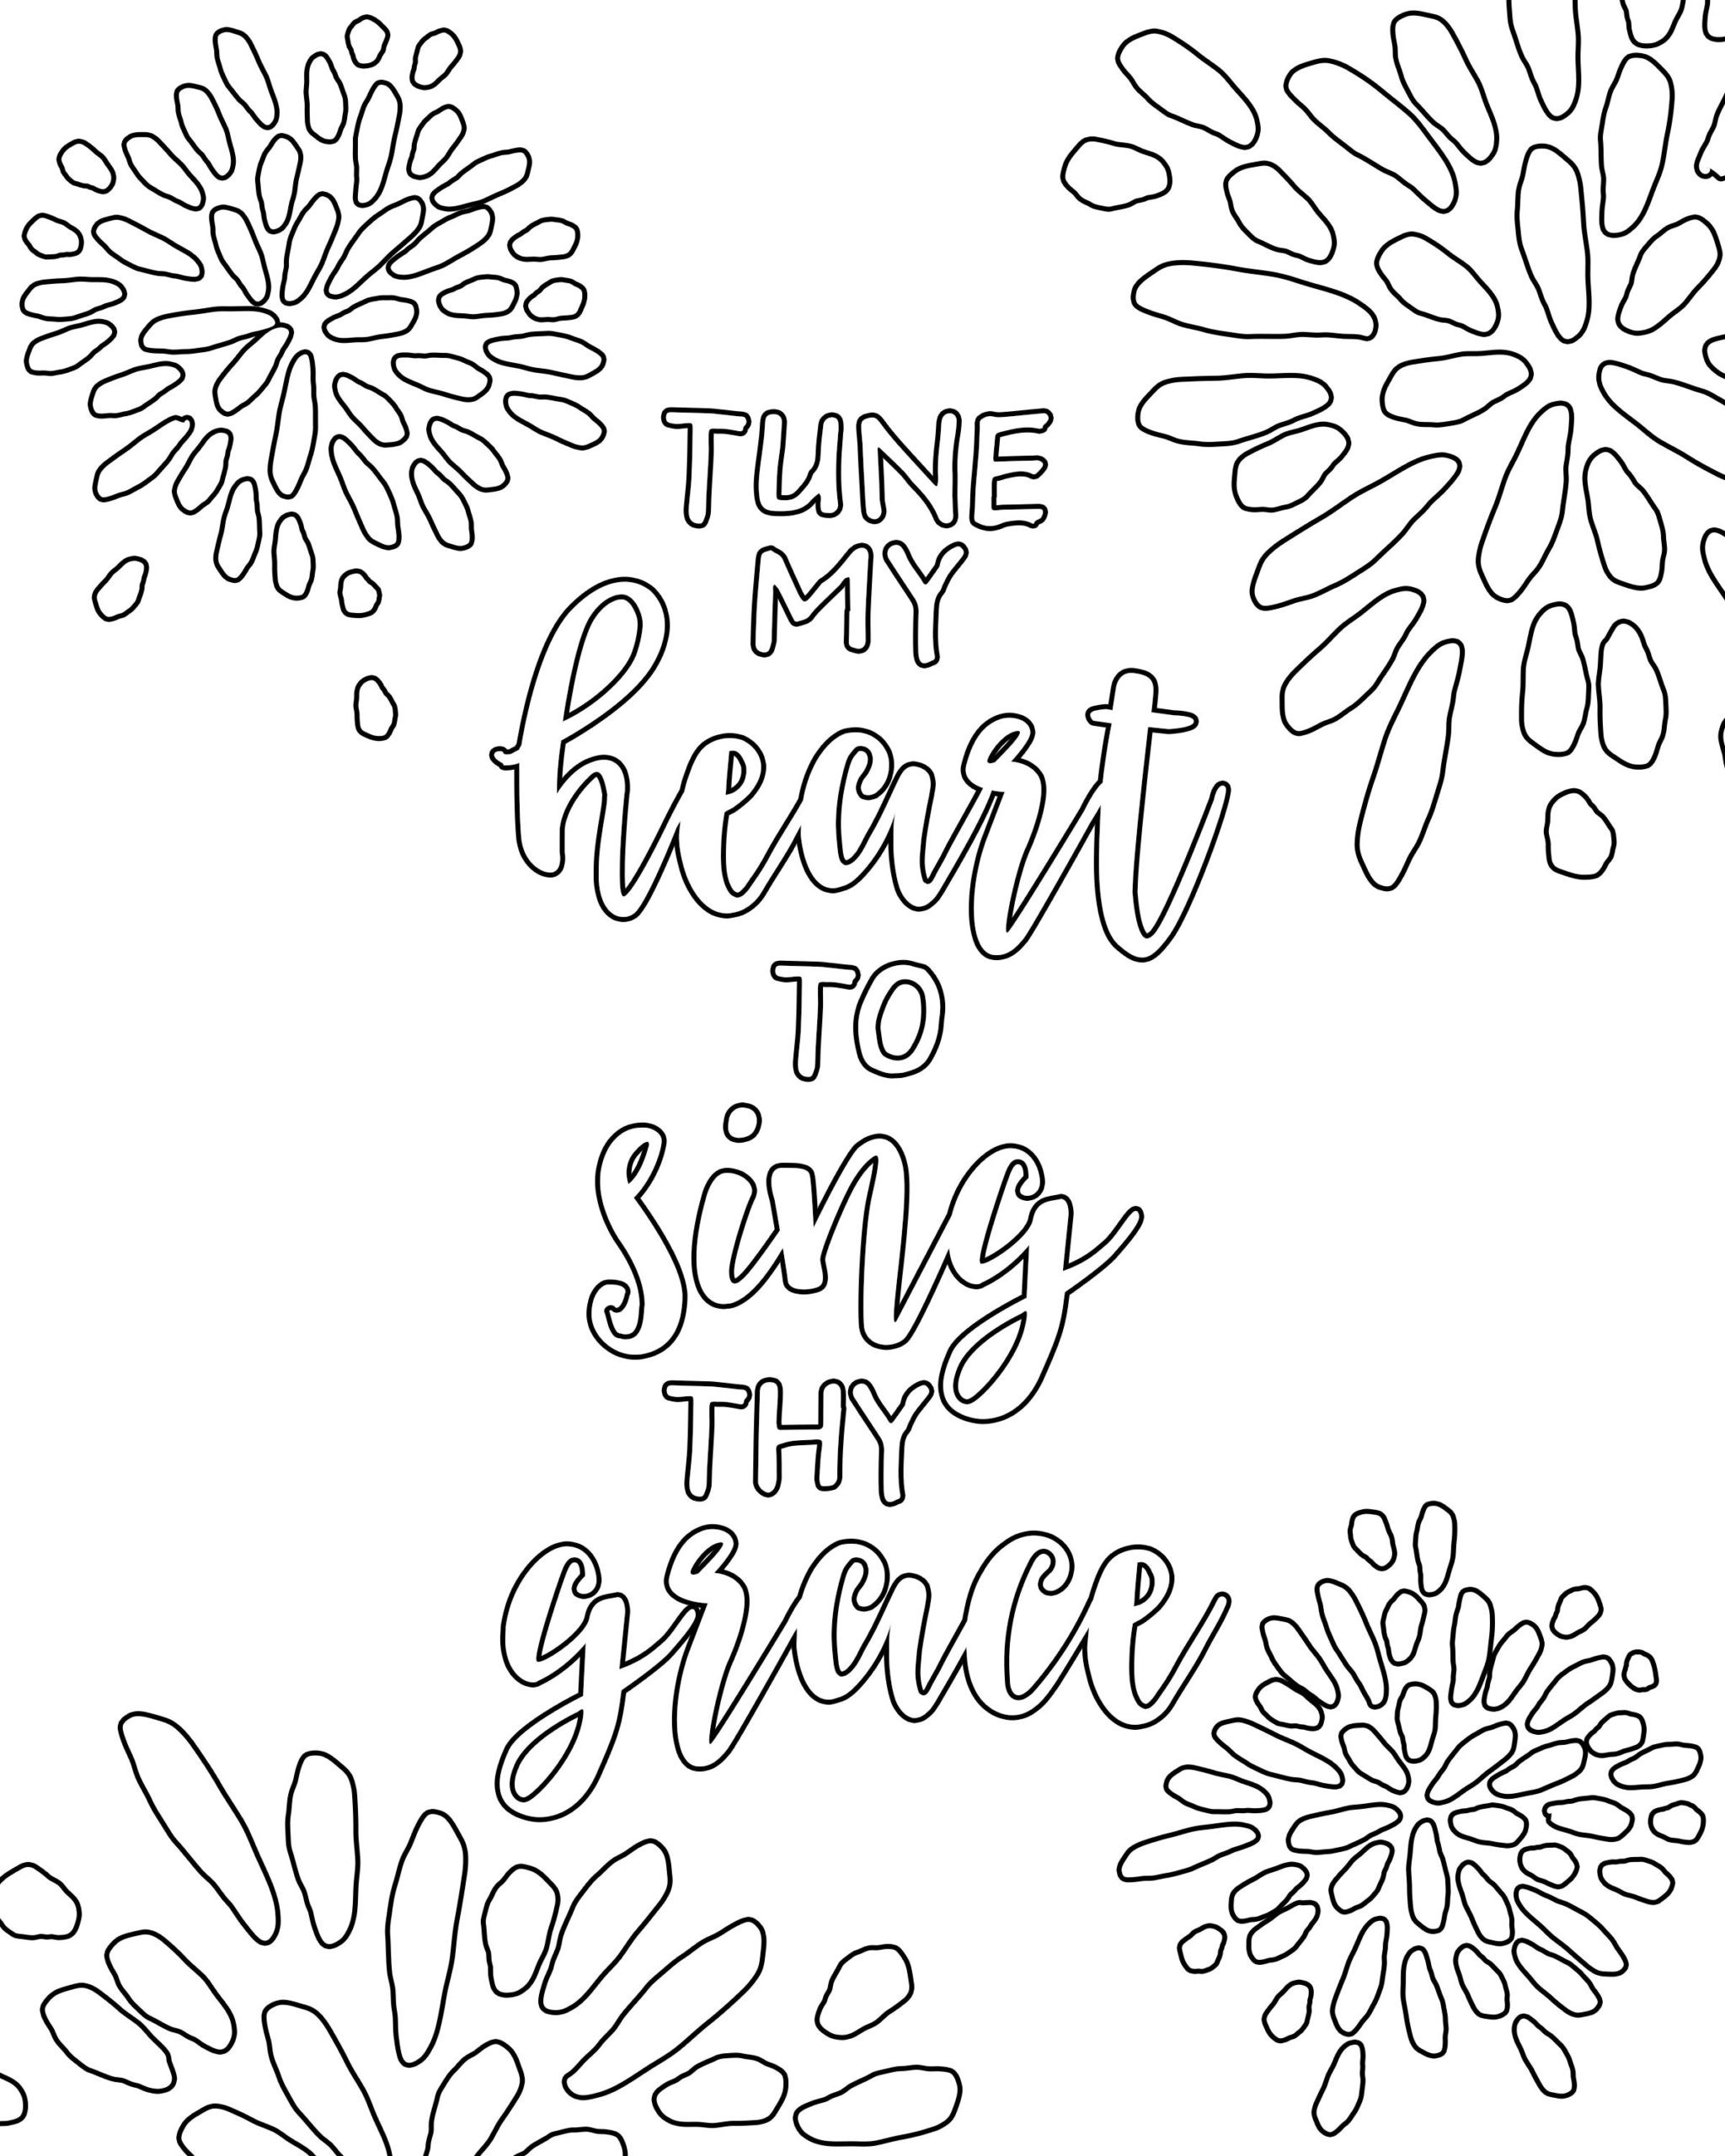 Free Printable Religious Worksheets Bible Verse Coloring Pages for Preschoolers Light theay